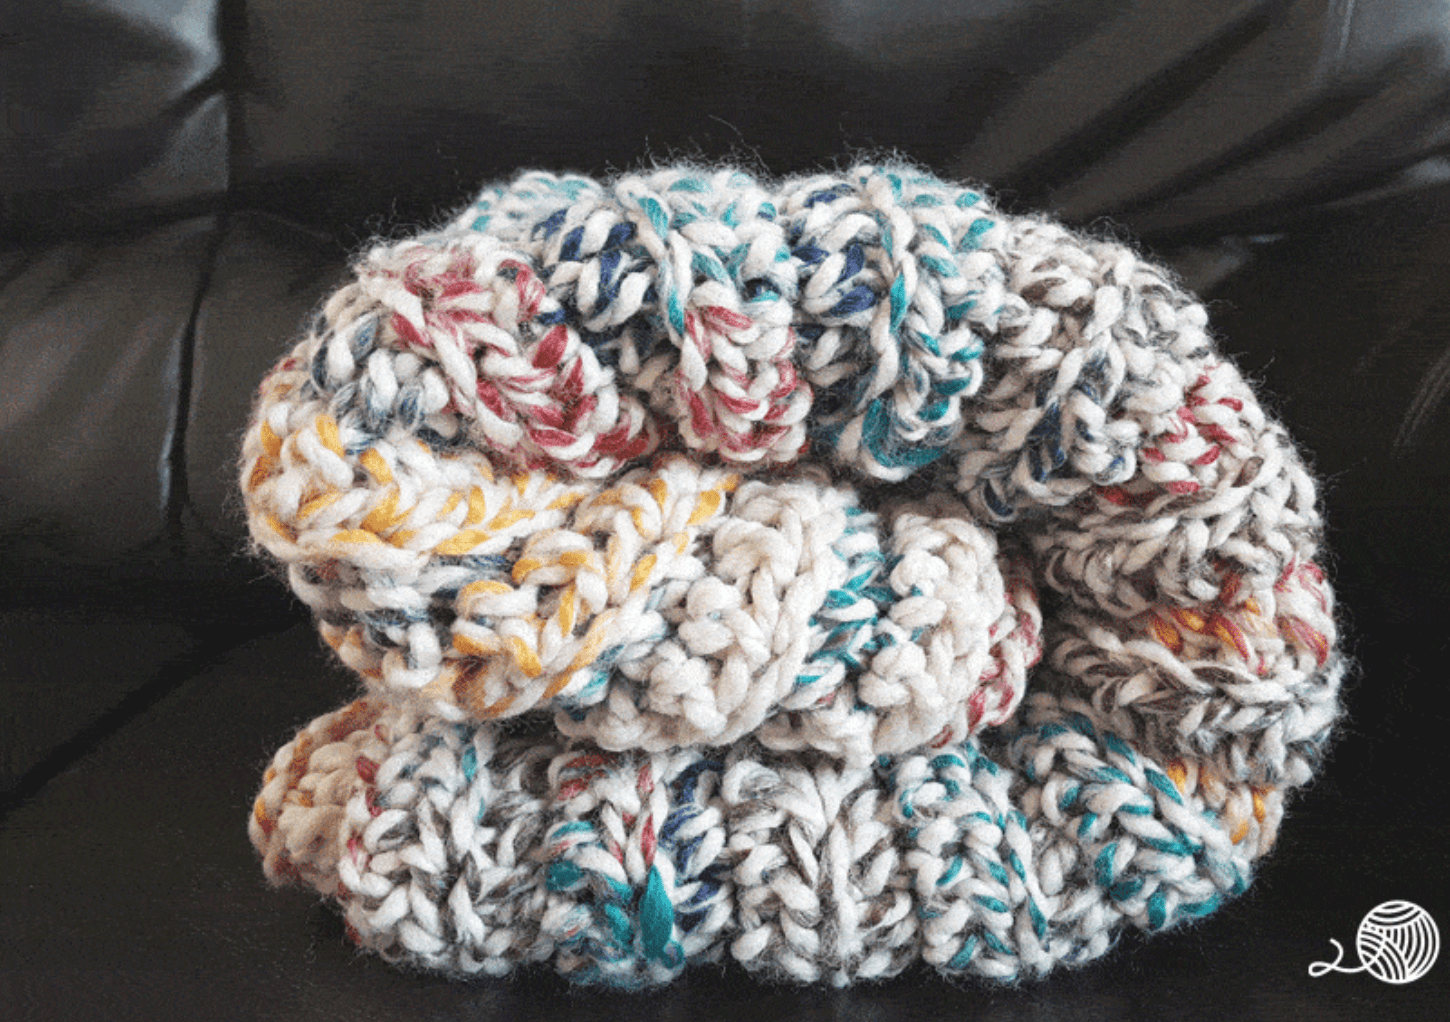 New hand crocheted mixed coloured yarn 42 inch heavy granny square blanket